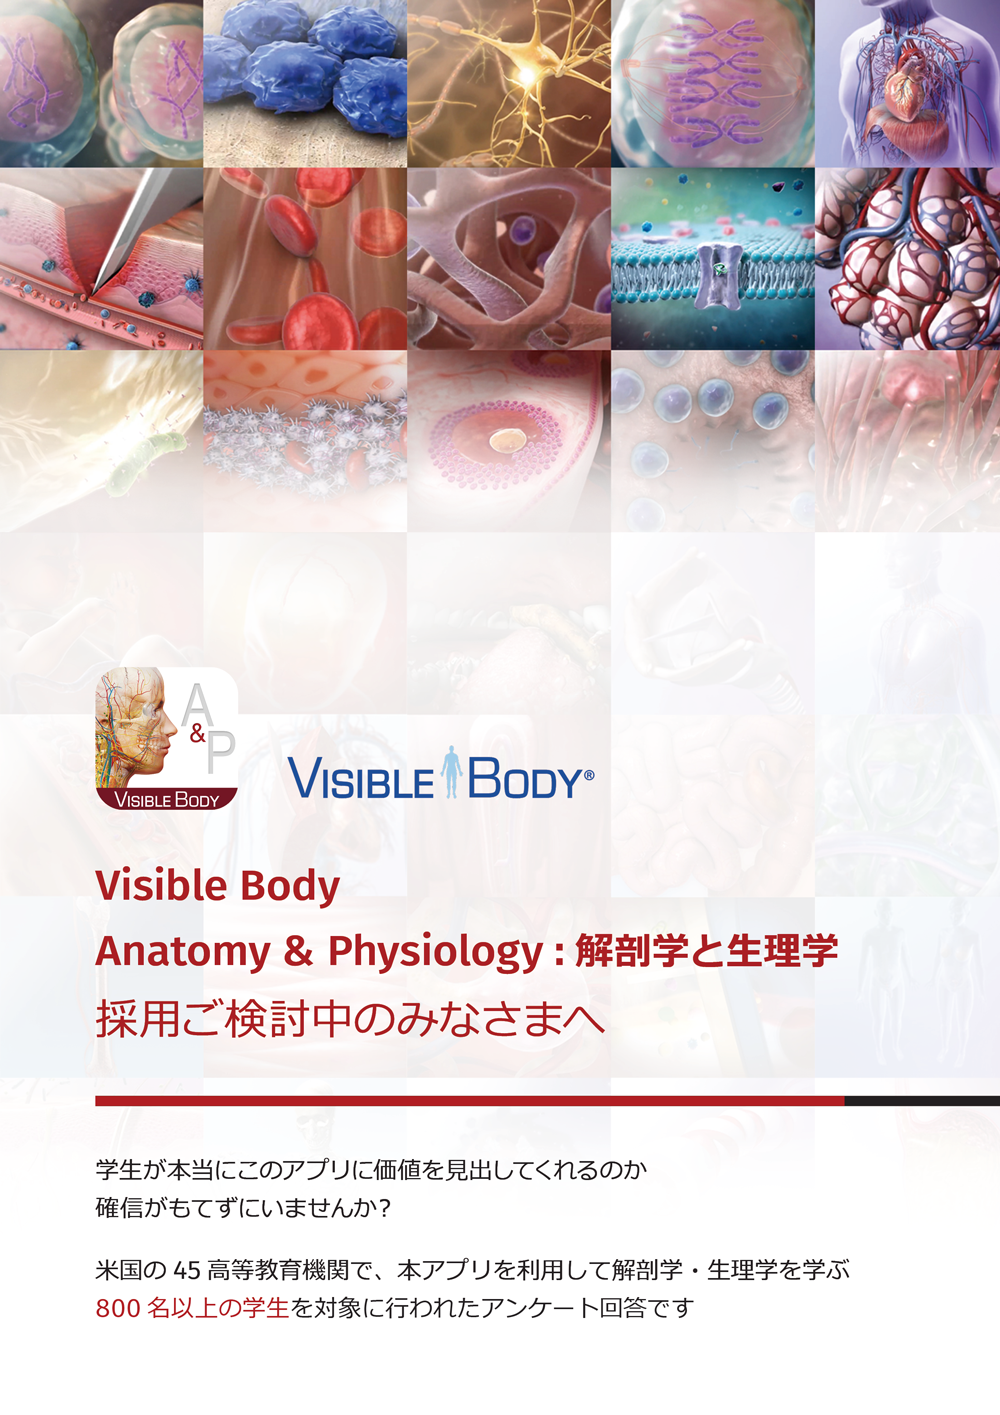 Thumbnail of Visible Body Anatomy & Physiology case study